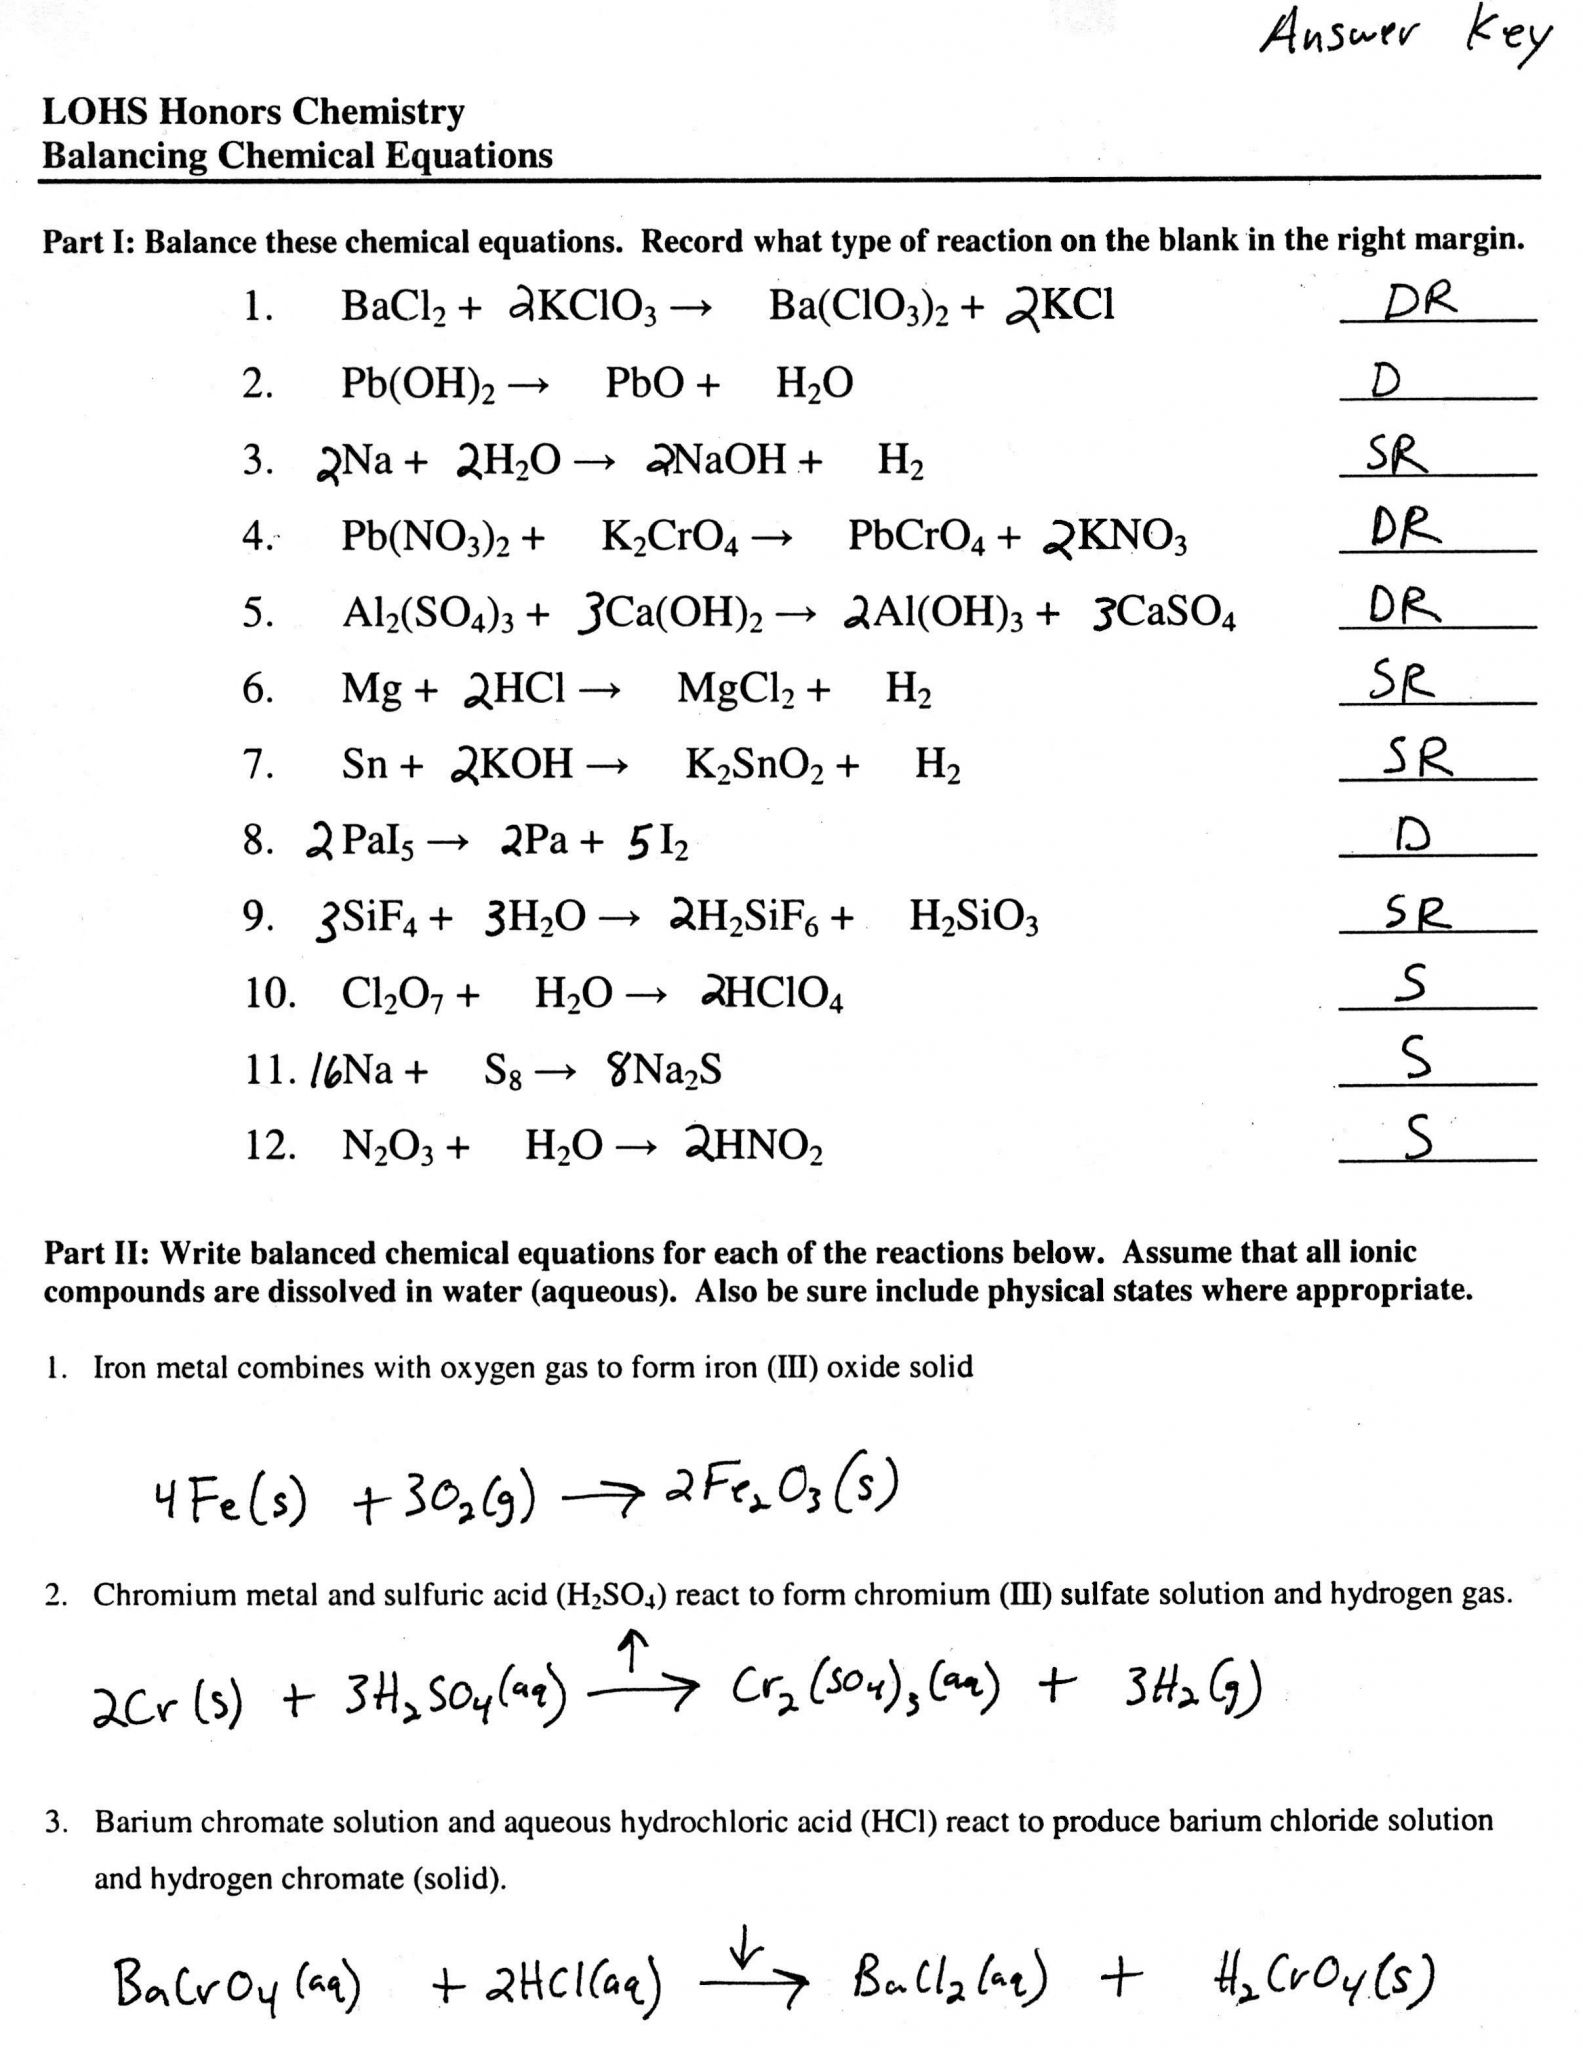 Balancing Oxidation Reduction Reactions Worksheet